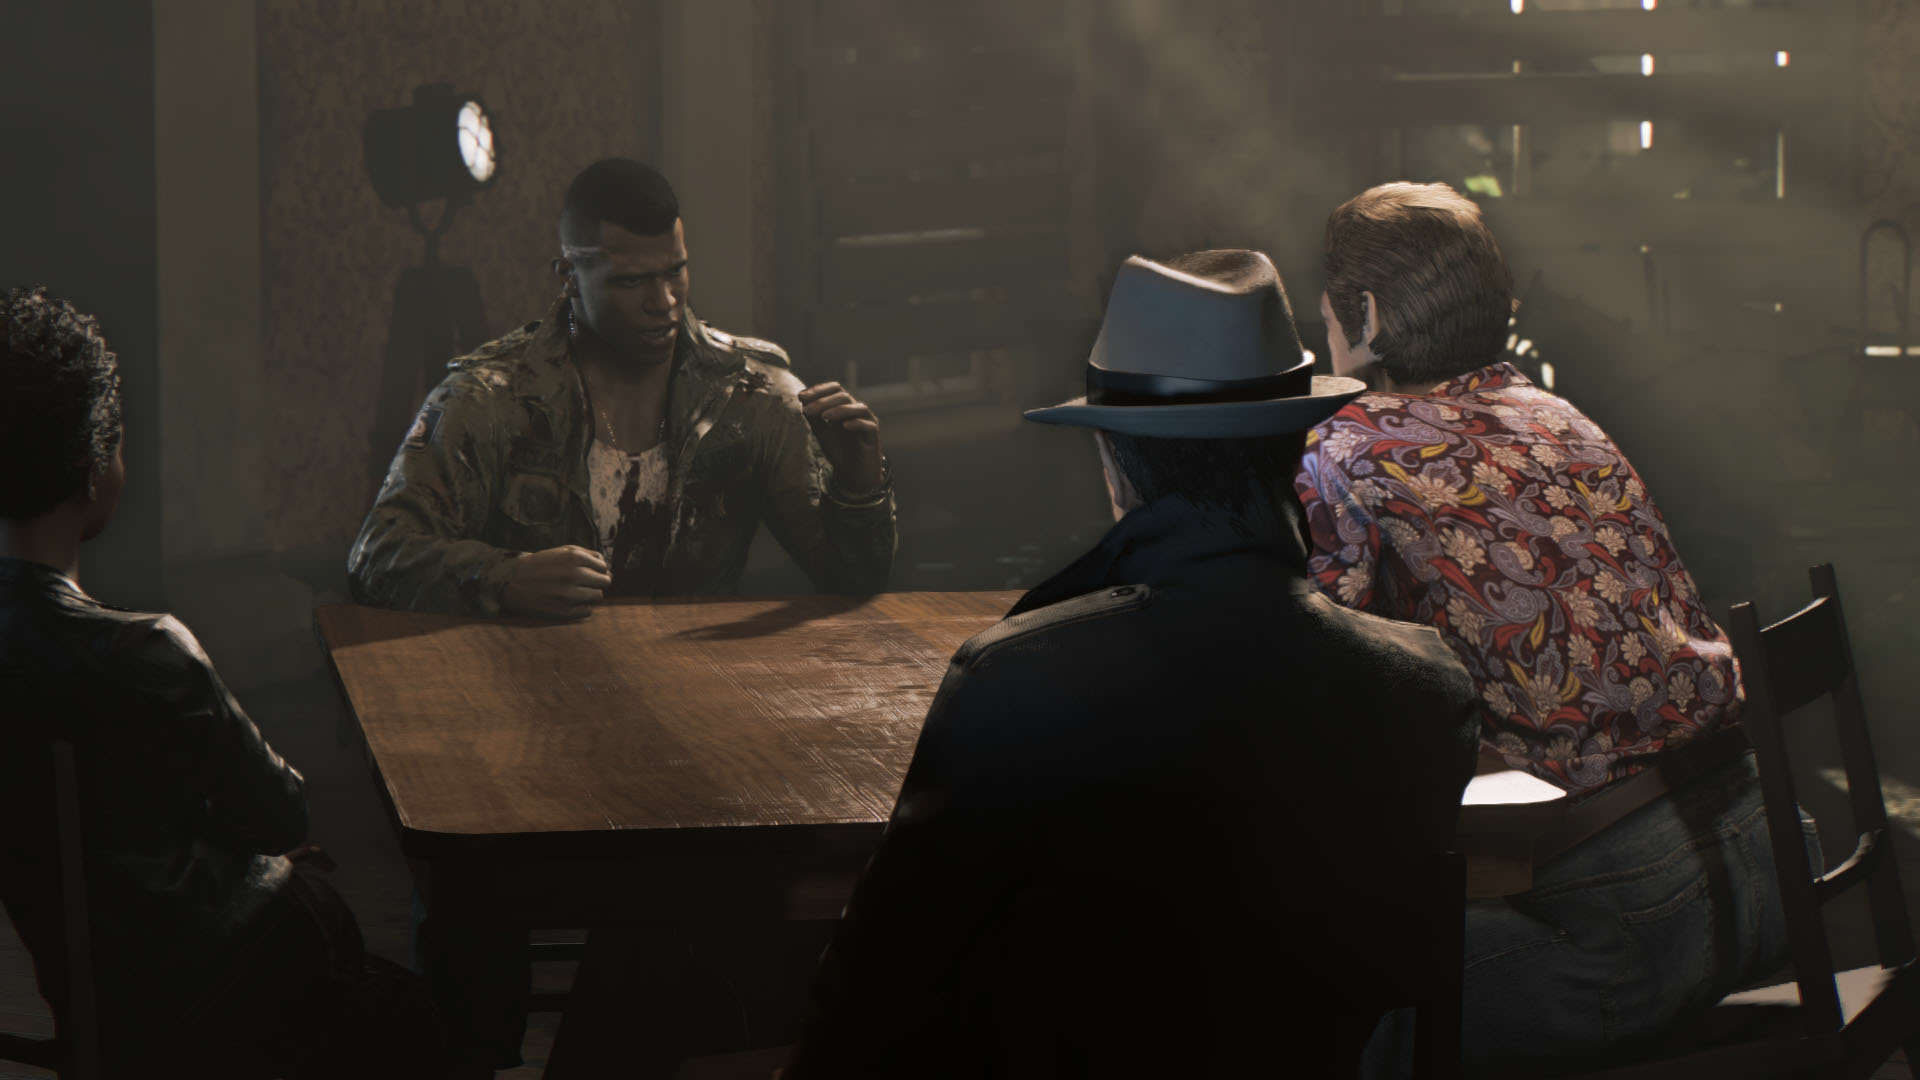 Mafia3 SitDown Mafia 3 Trailer Takes A Violent Tour Of New Bordeux